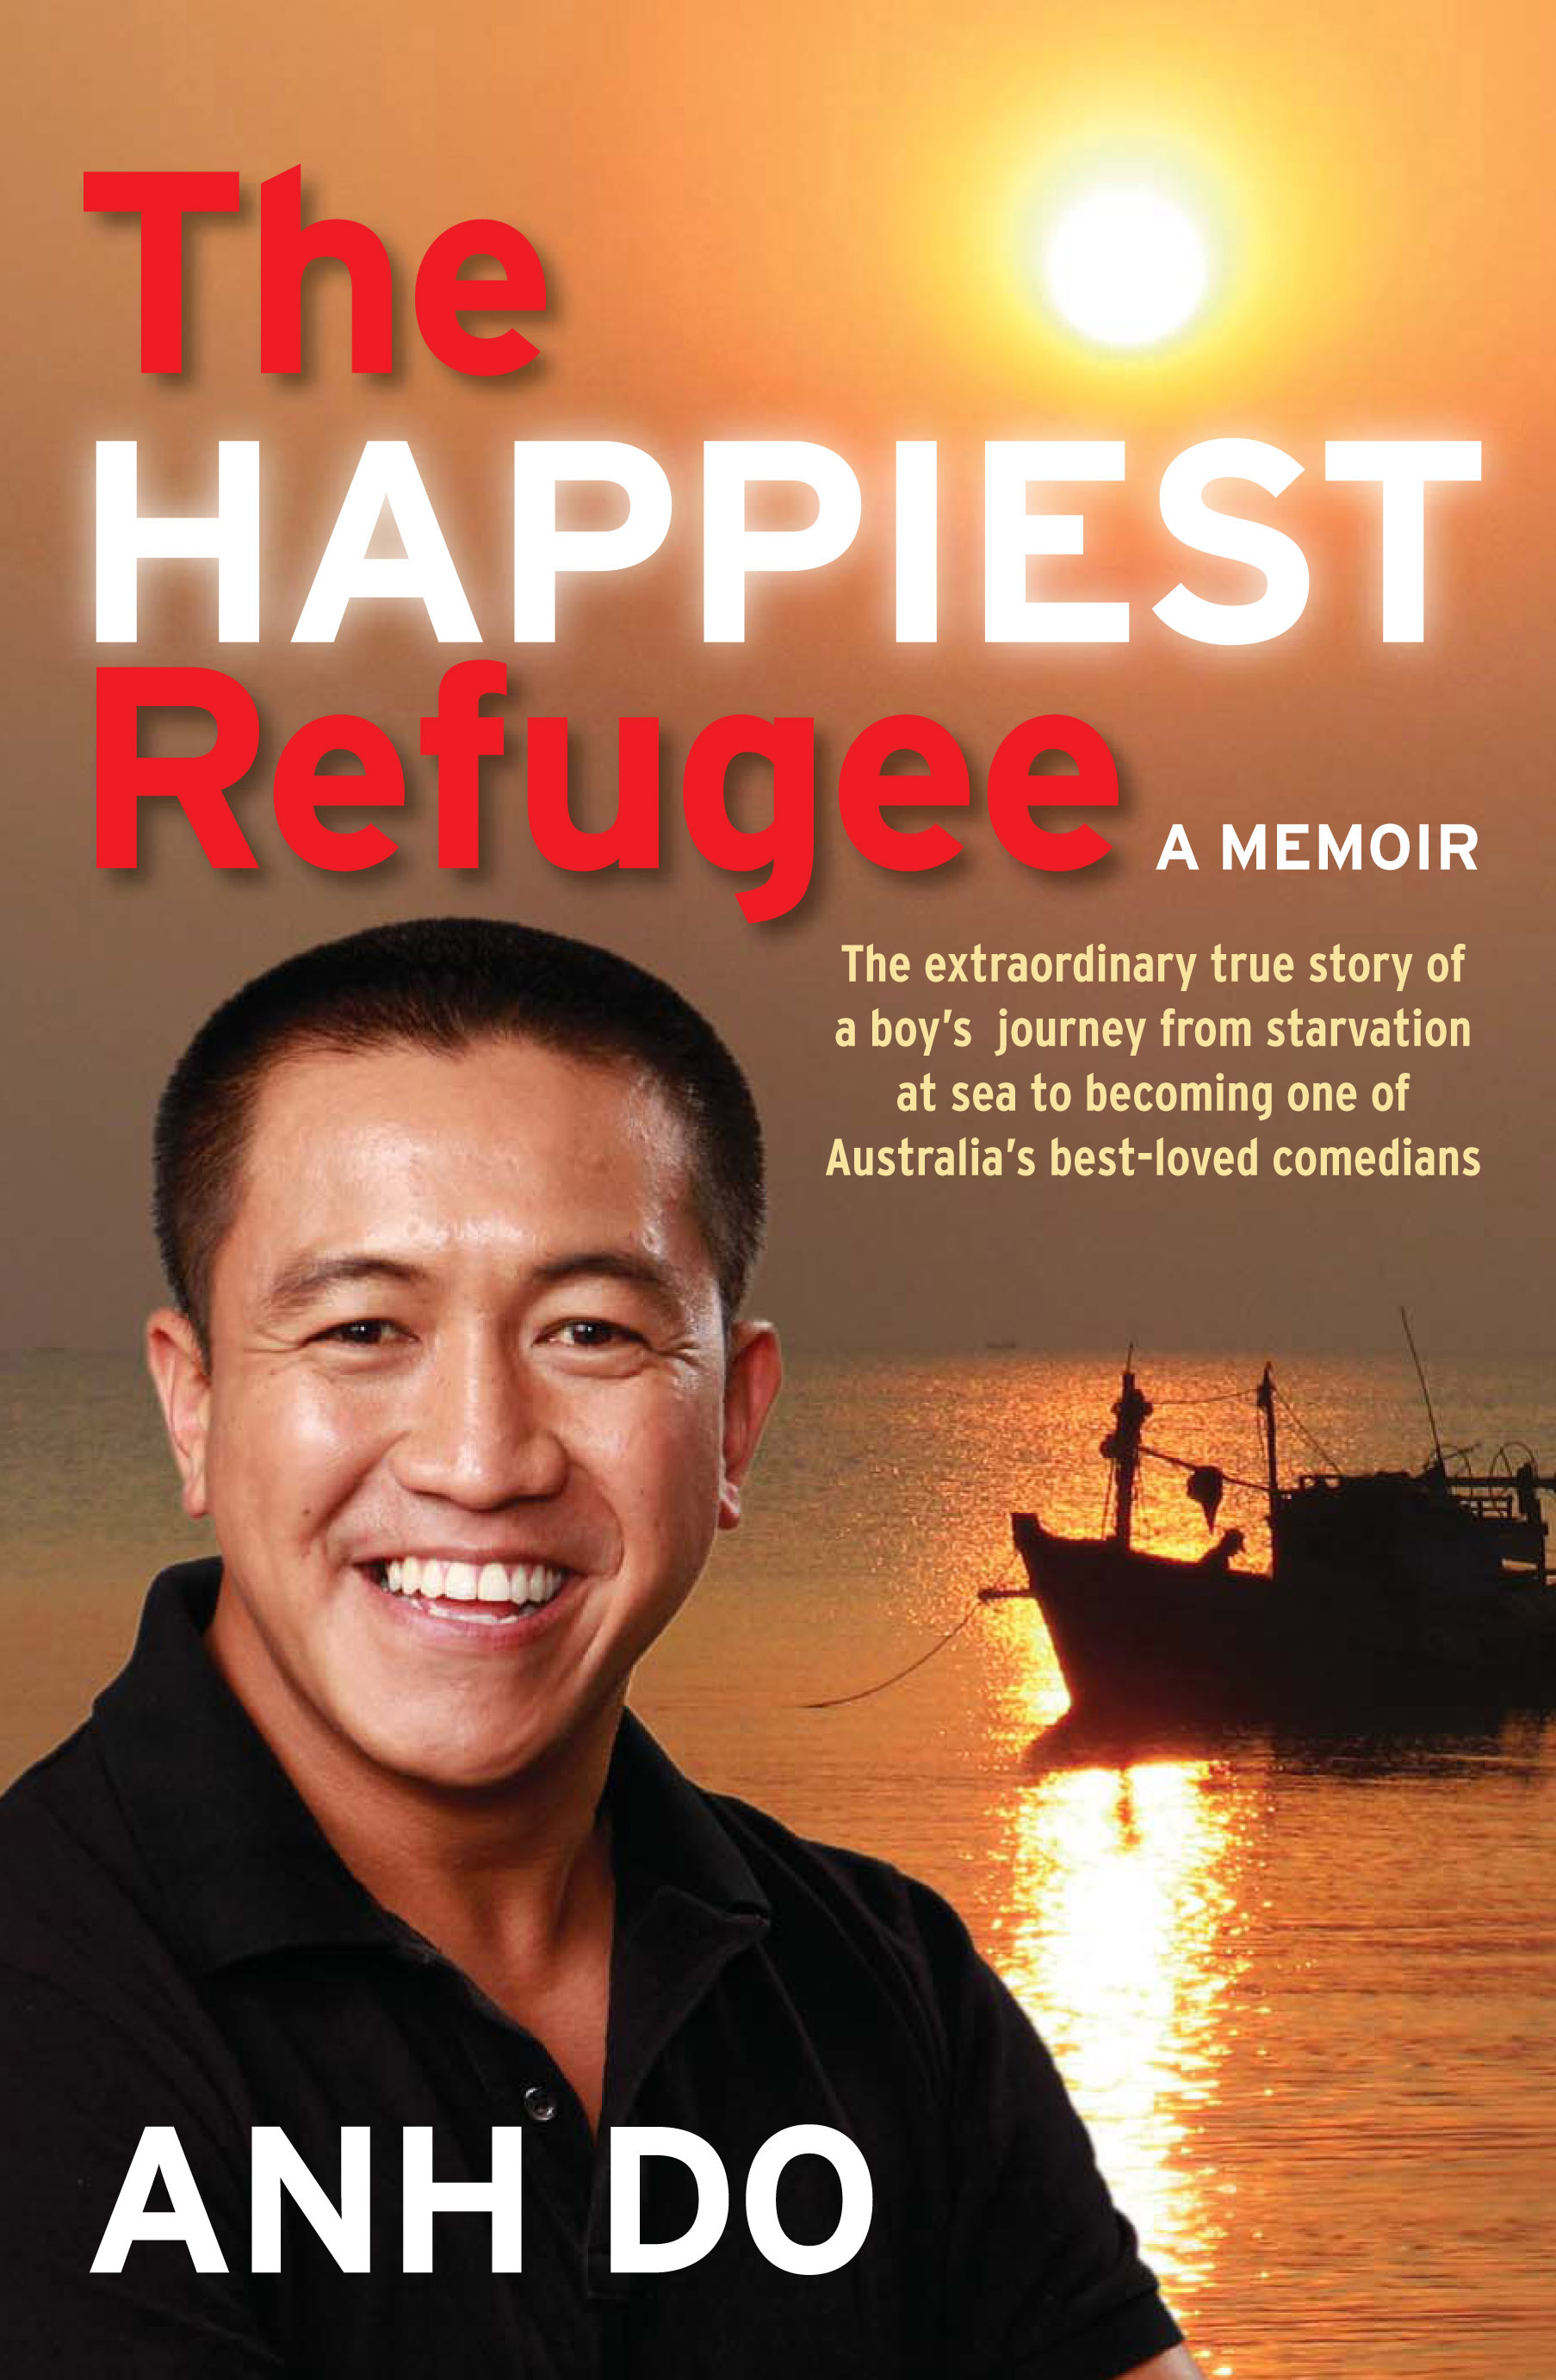 The Happiest Refugee - This is the account of how Anh Do came to Australia on a boat from Vietnam. Surviving pirates and dehydration was just the start of his journey. After struggling in many jobs, he realised that comedians only have to work a few hours a week so he changed career. A five-star read!